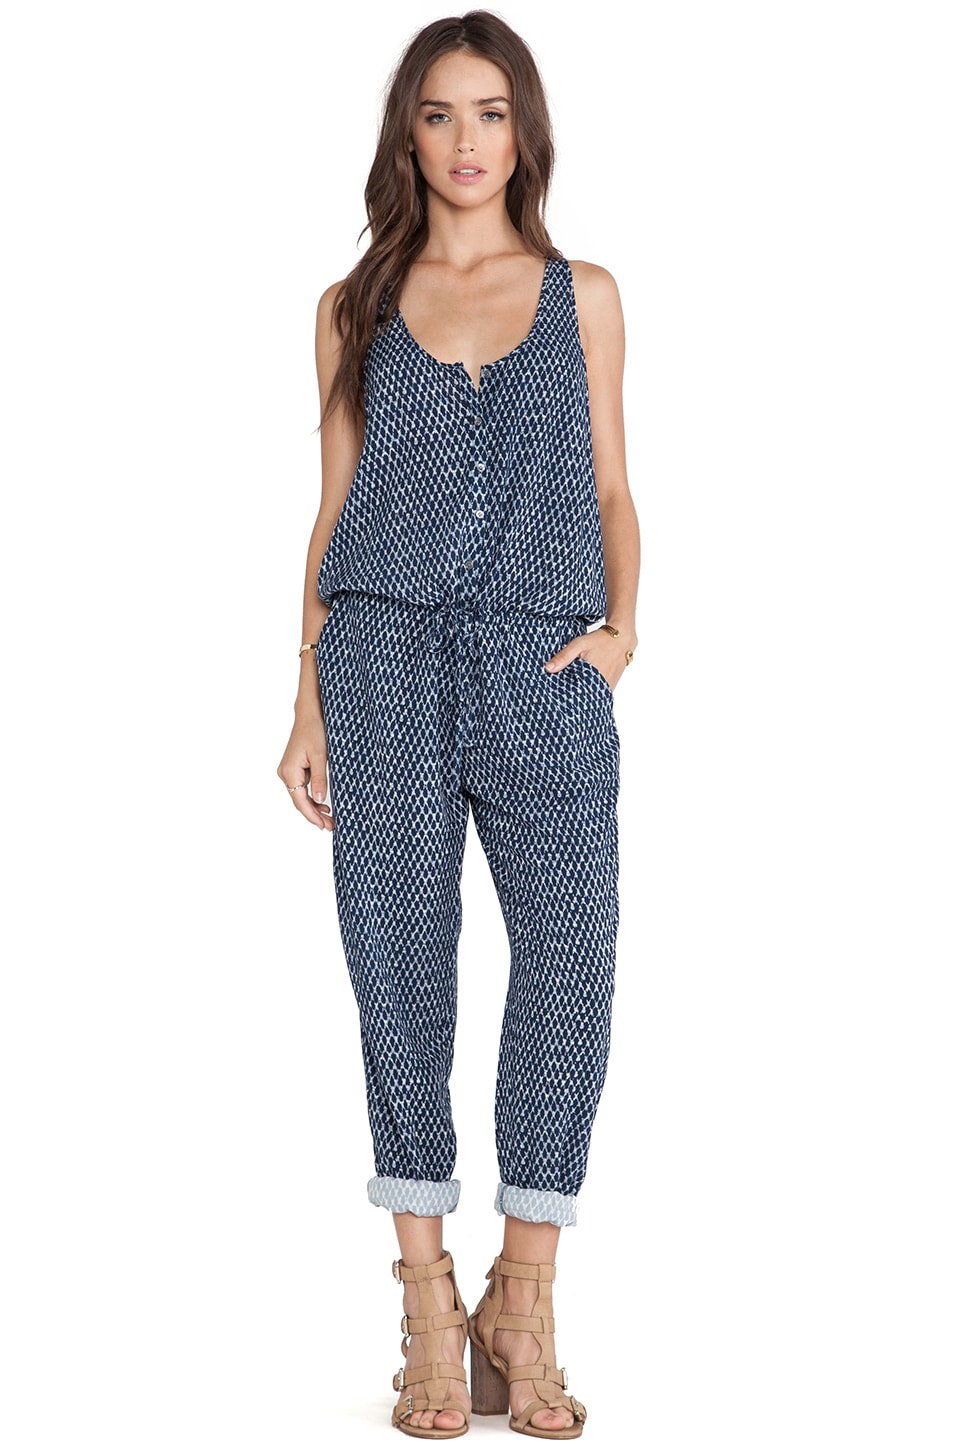 Soft Joie Biltmore Jumpsuit in Deep Indigo